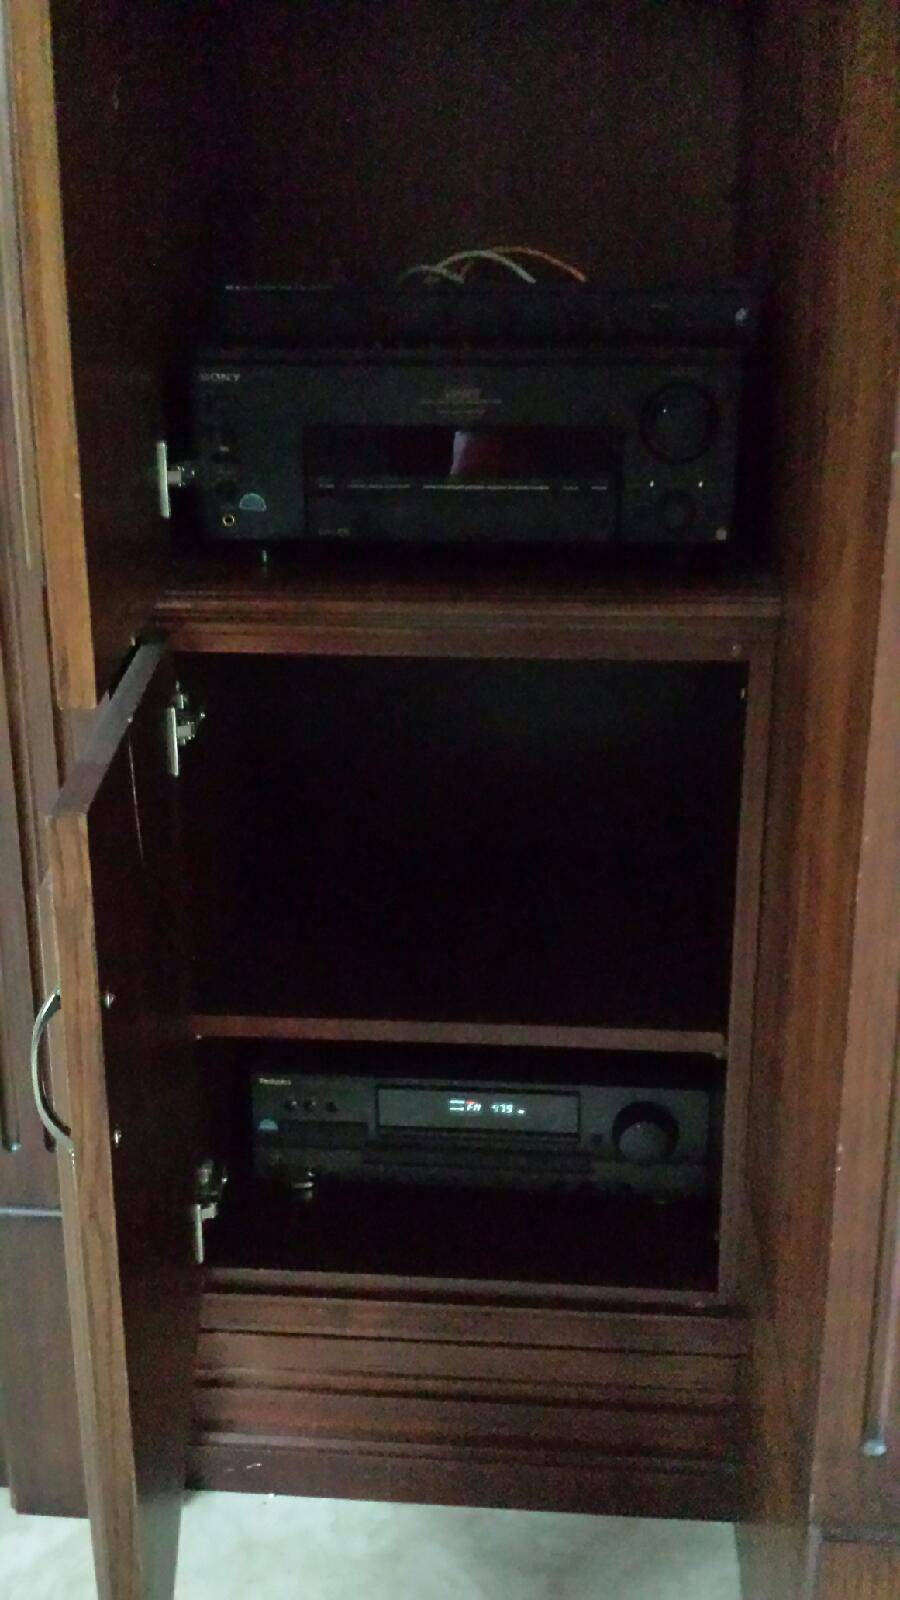 All components inside cabinet